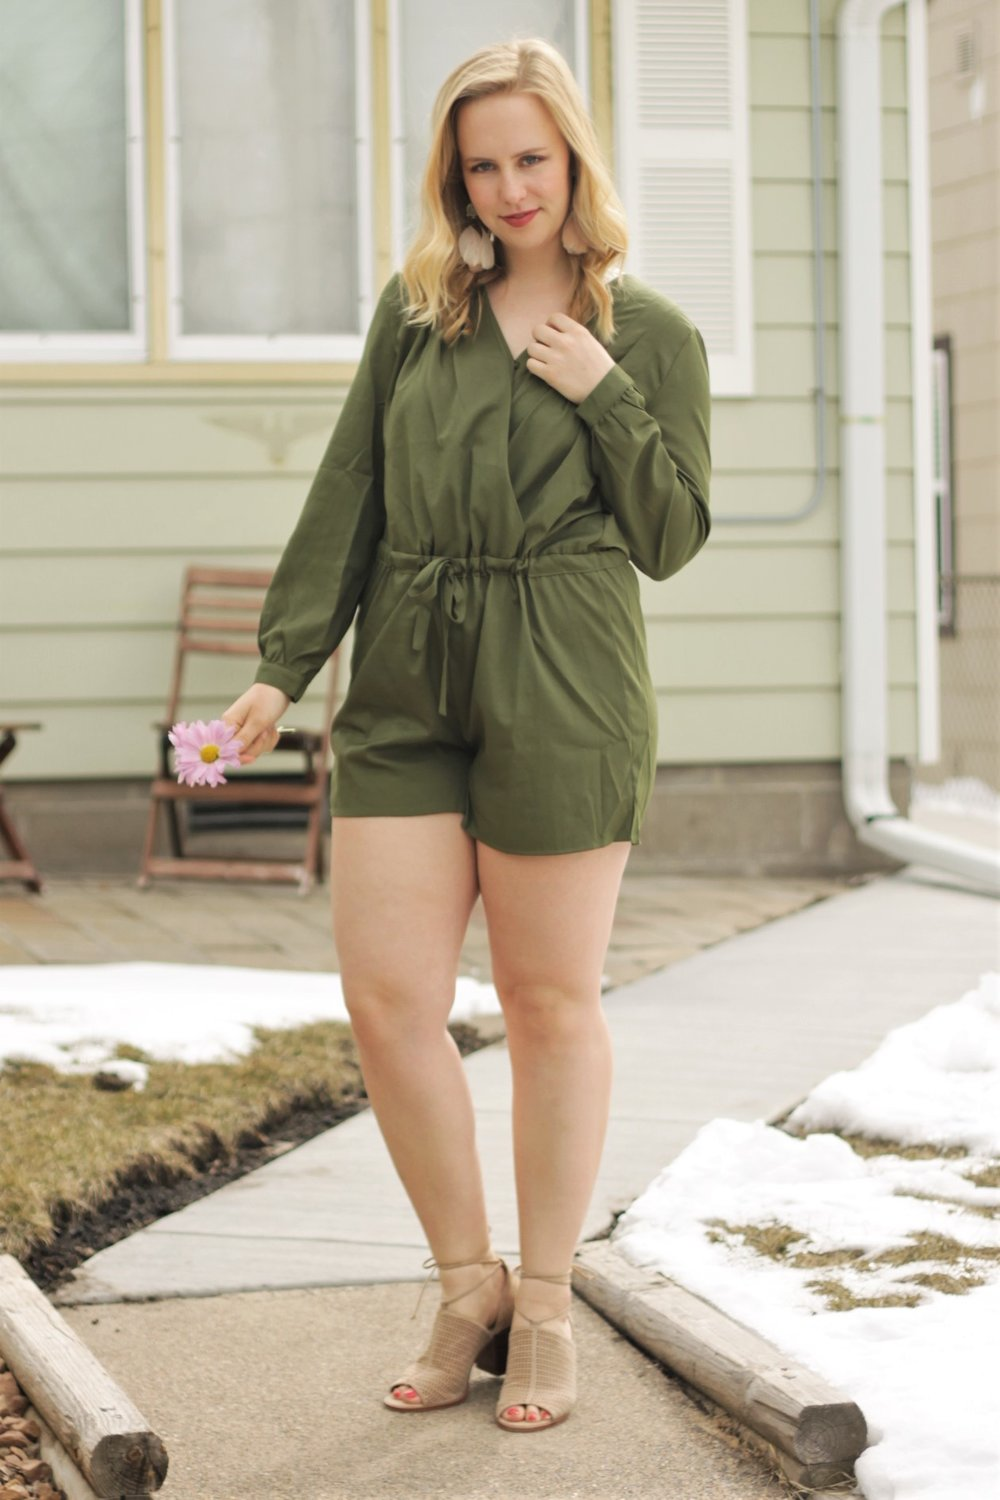 Olive Romper   When will Spring arrive?   Work & What She Wore